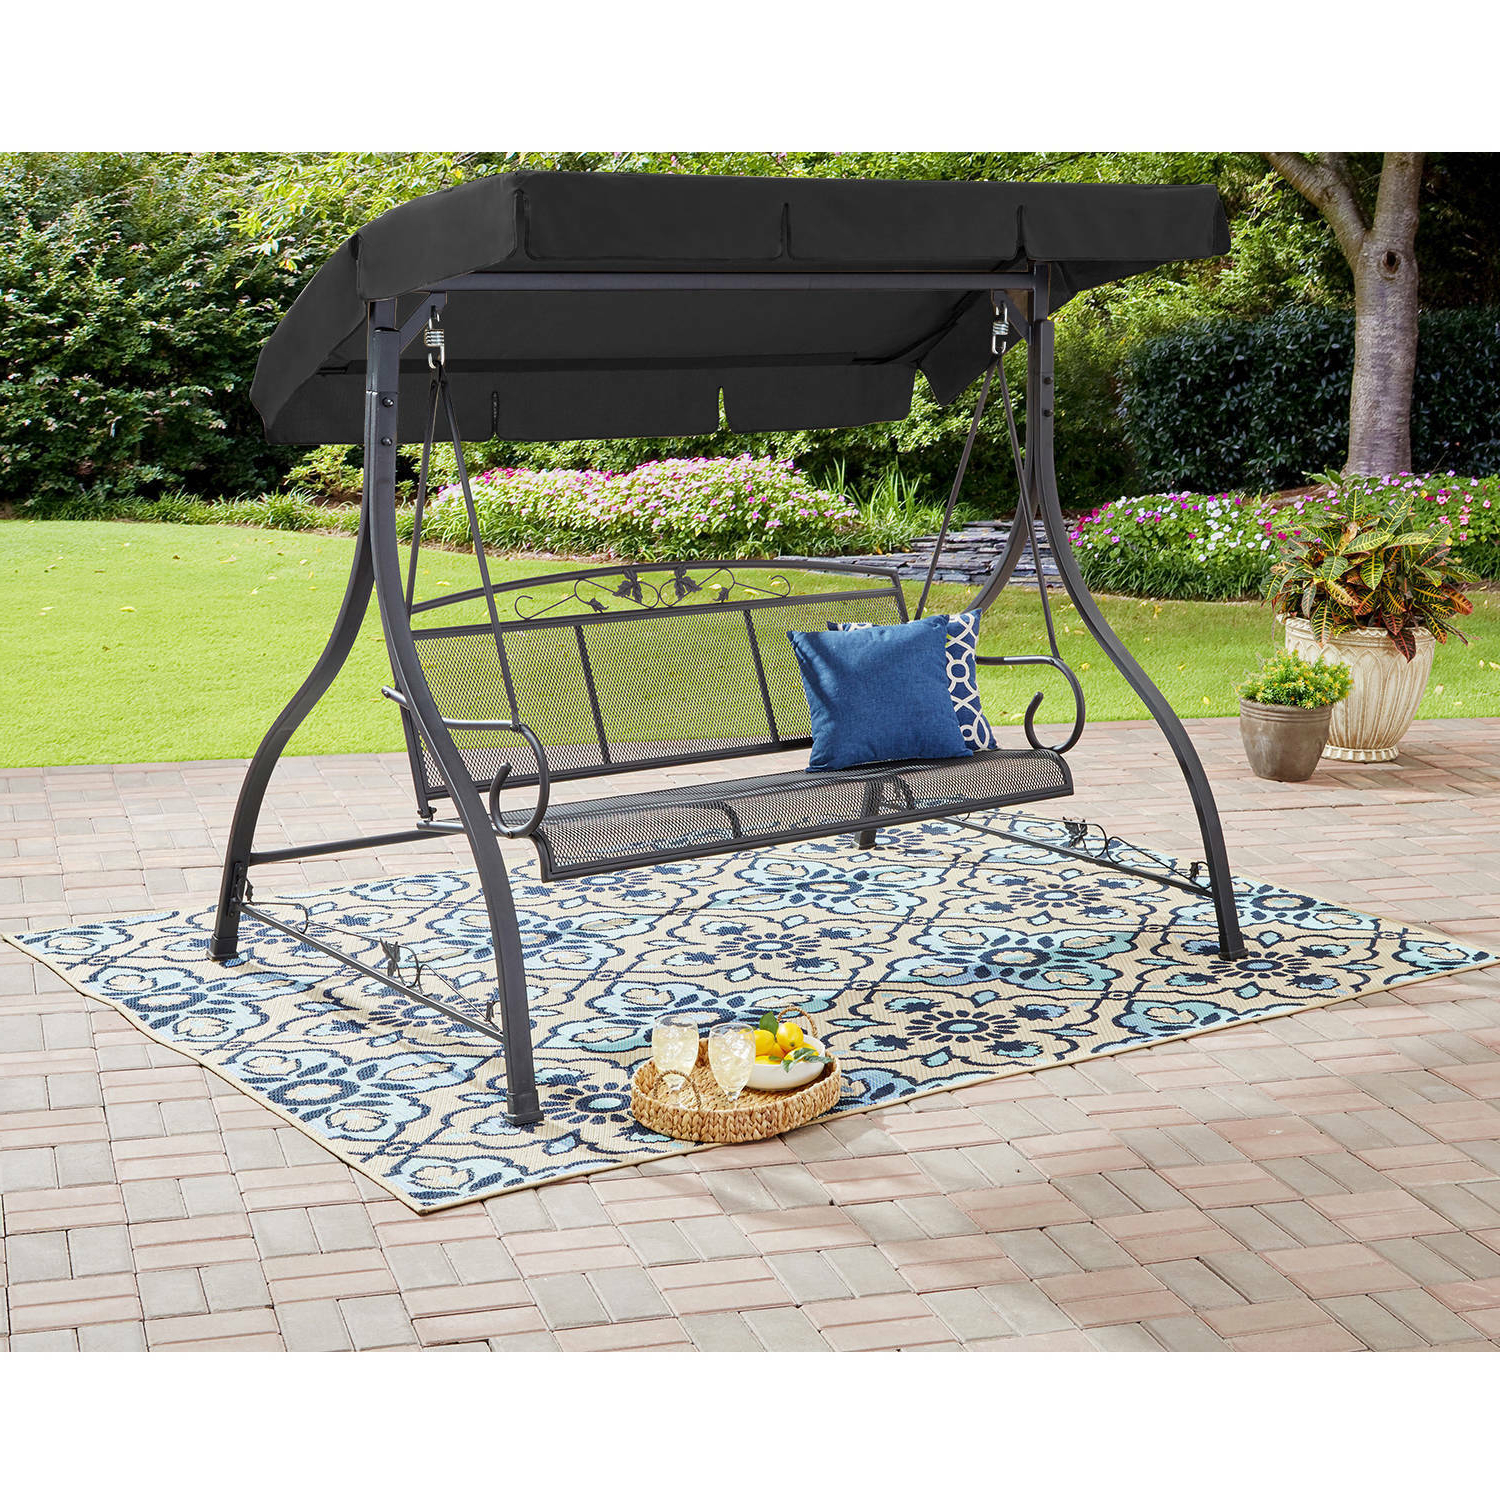 Widely Used Details About Outdoor 3 Person Swing Set Metal Bench Canopy Patio Porch Loveseat Deck Throughout 2 Person Hammock Porch Swing Patio Outdoor Hanging Loveseat Canopy Glider Swings (View 18 of 30)